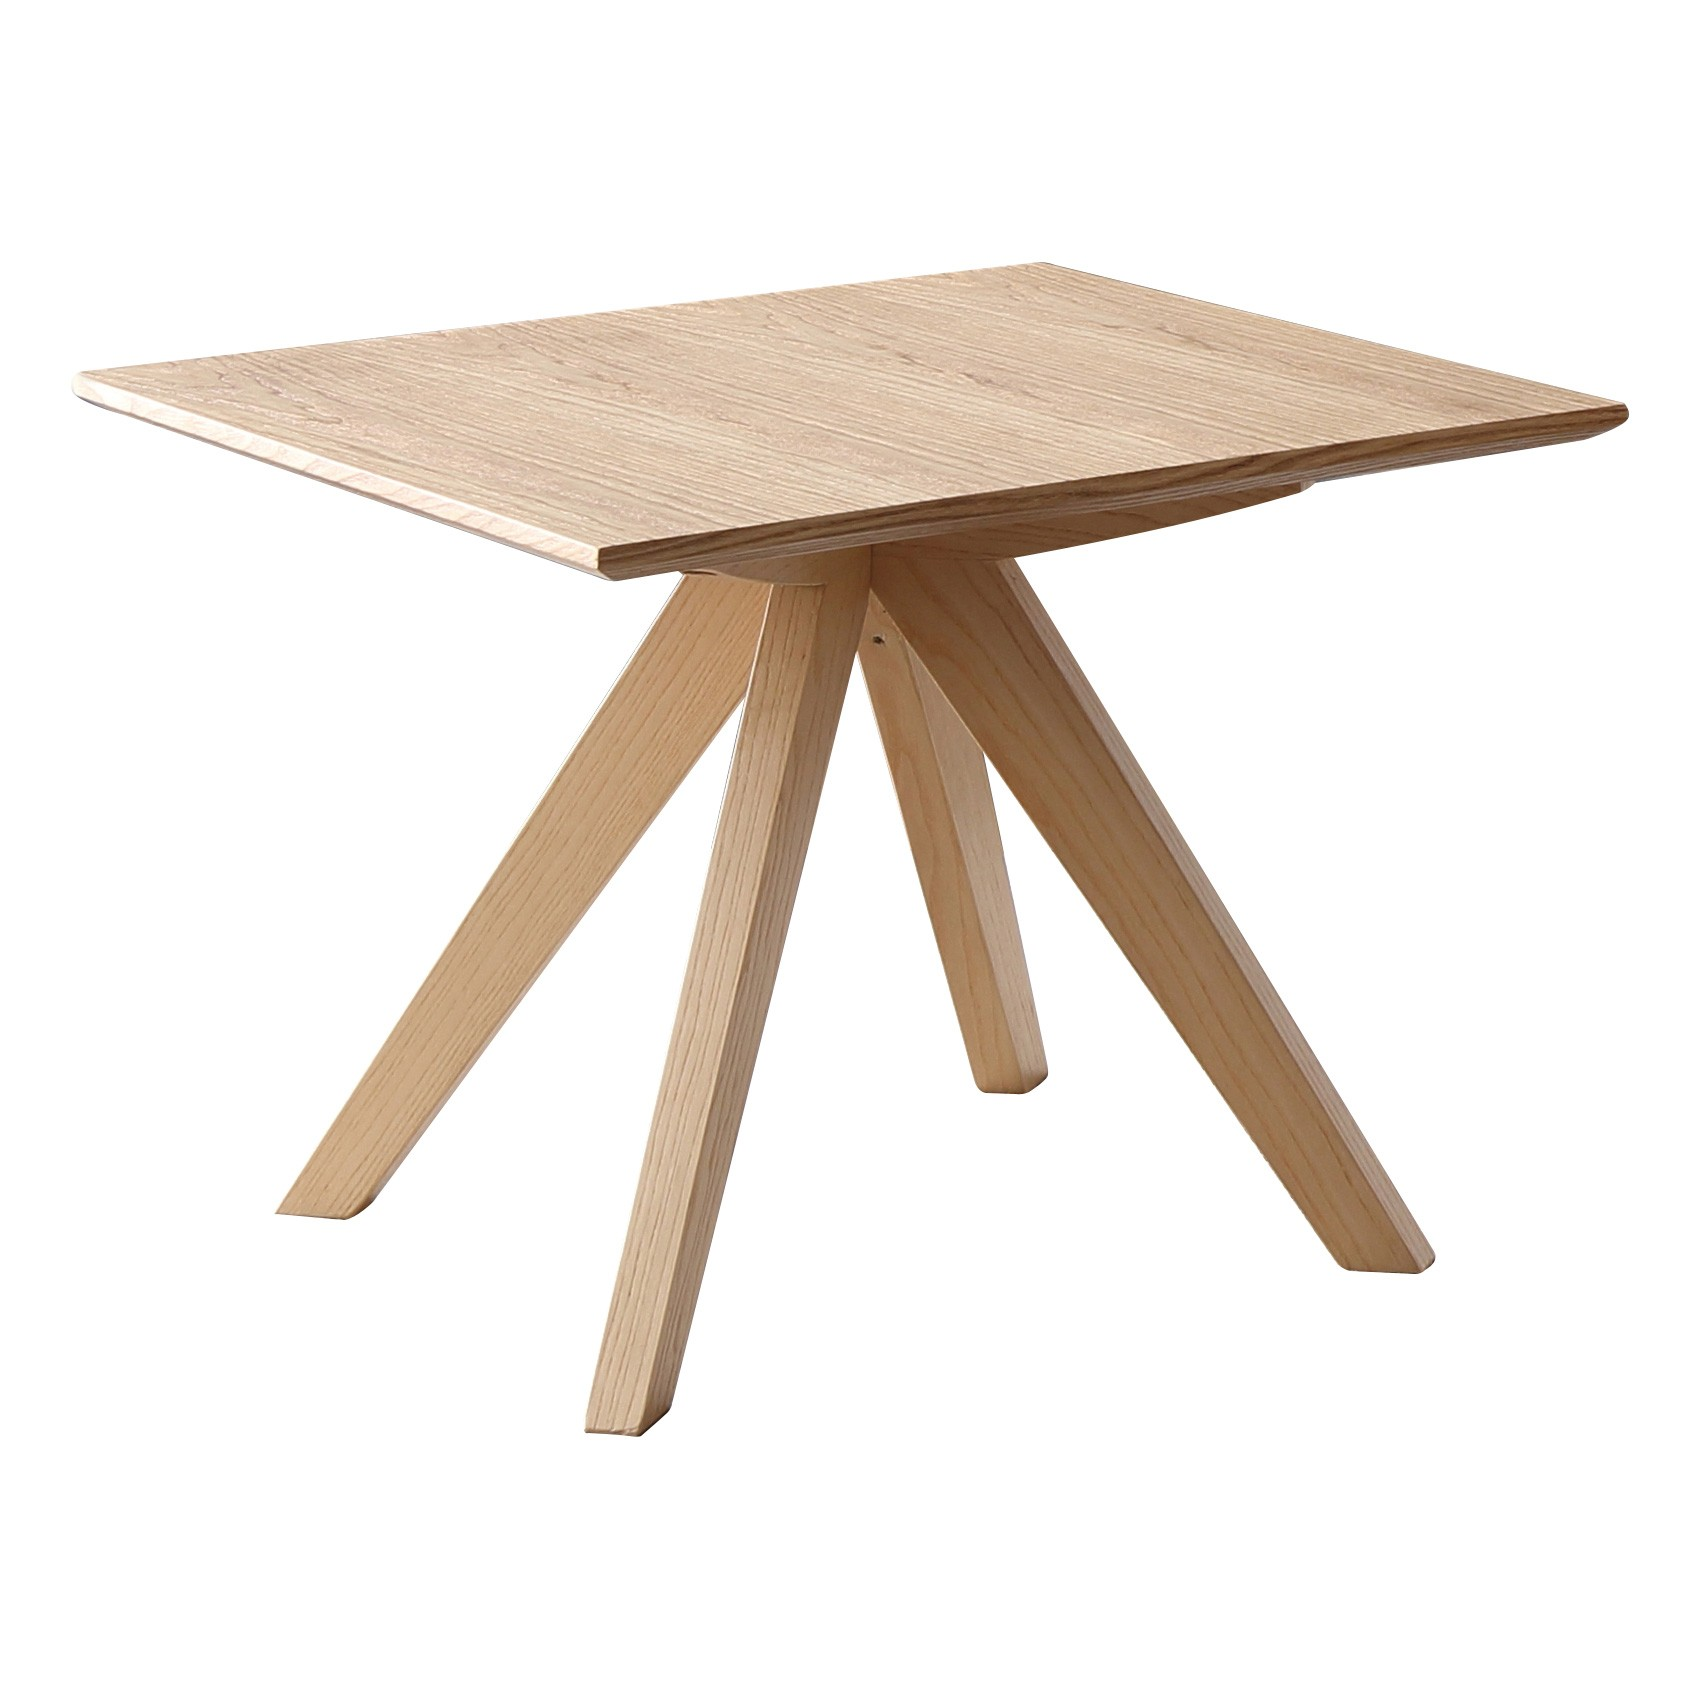 Danny Oak Tibmer Lamp Table